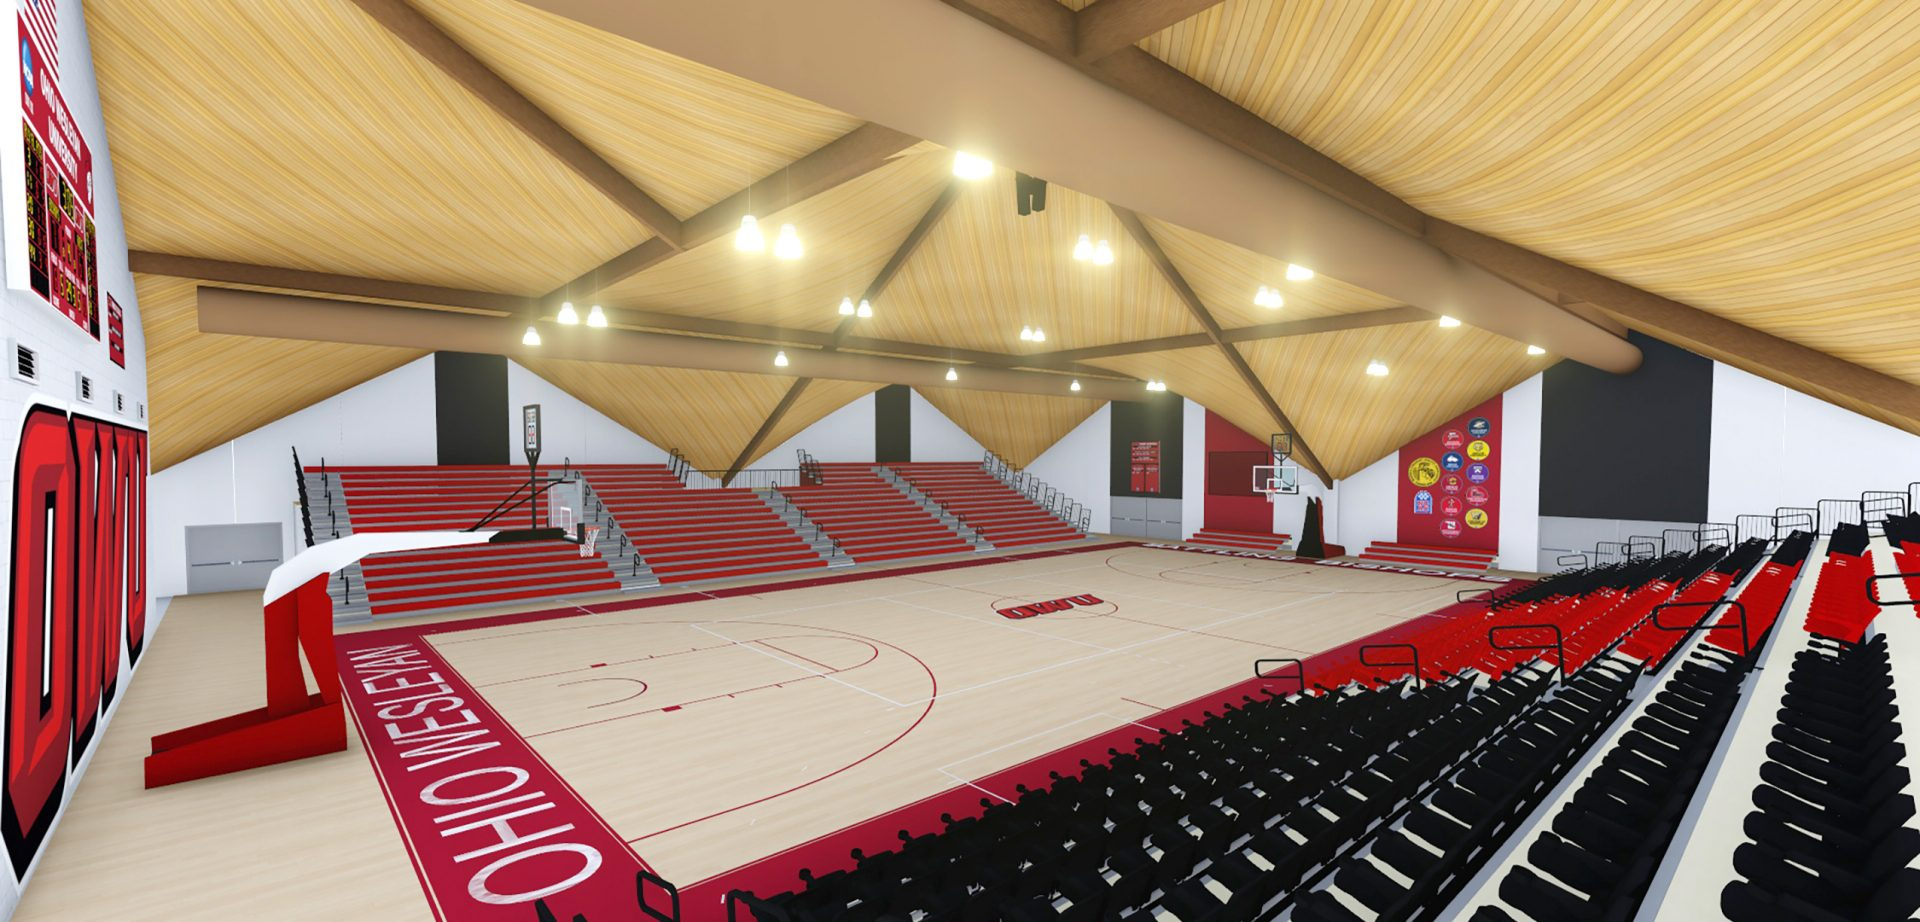 Ohio School Starts From the Top on Arena